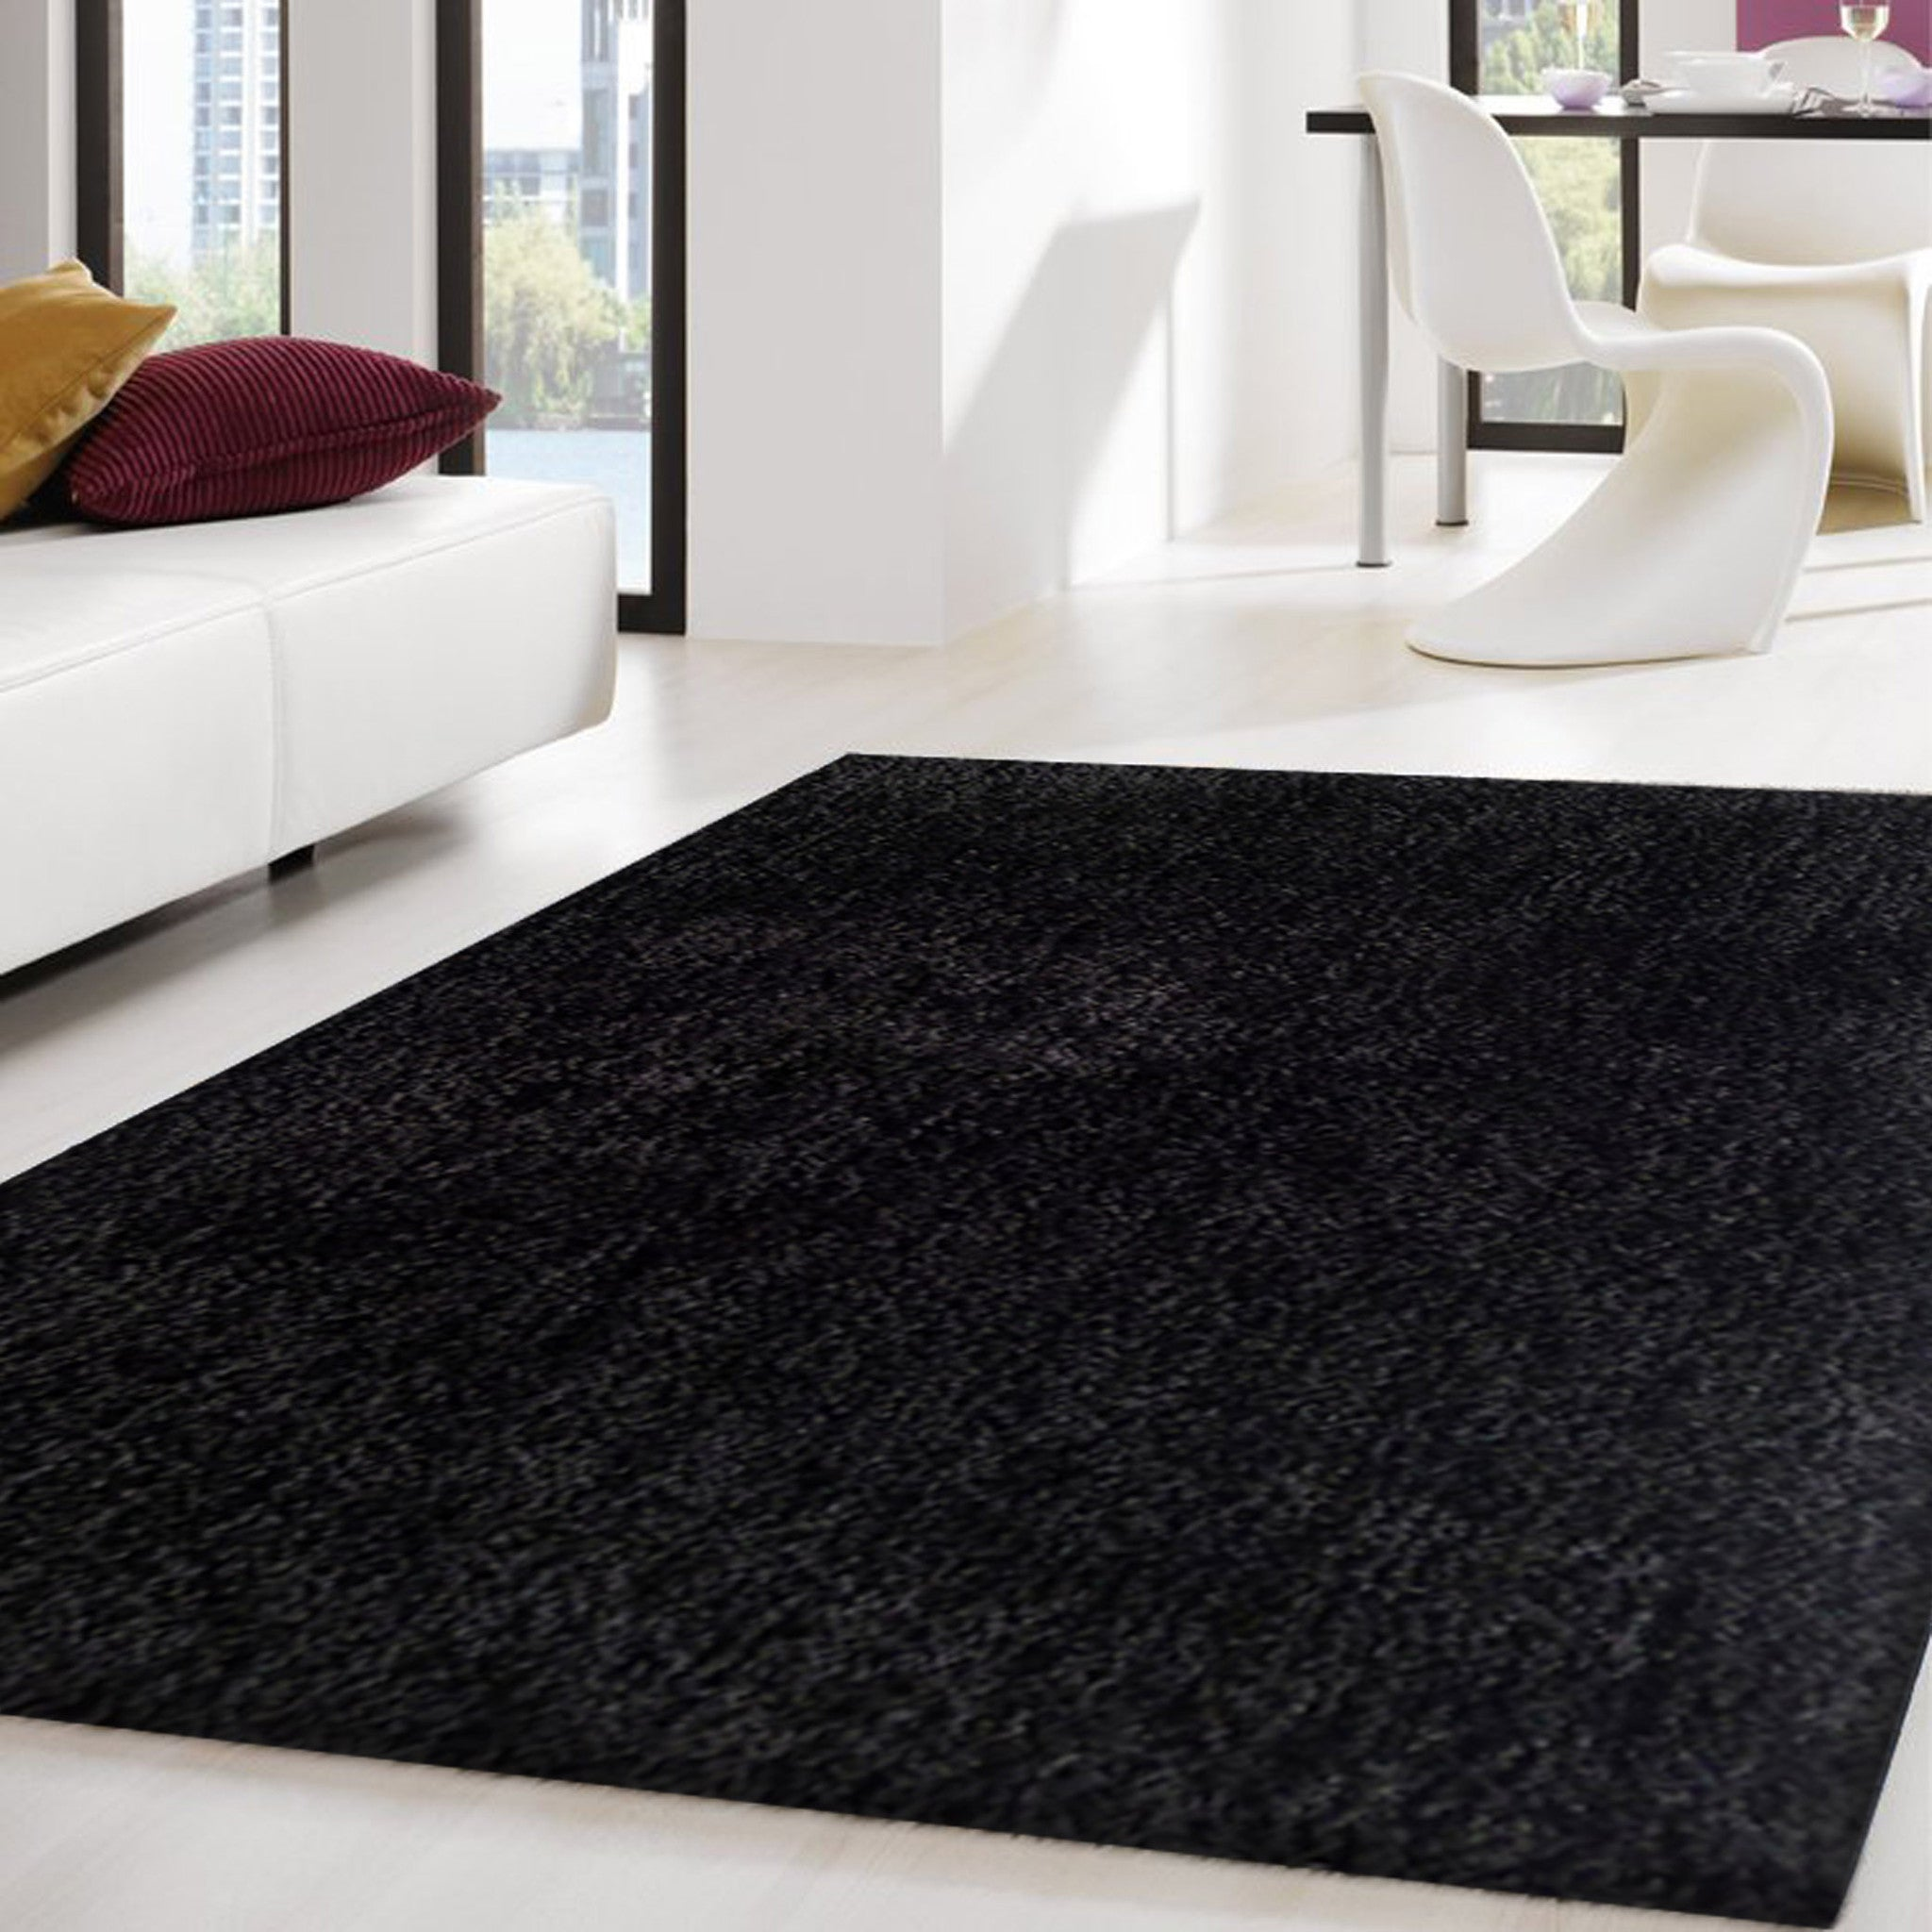 Design Black Rug 3 piece set hand tufted solid black thick plush shag area rug rugs